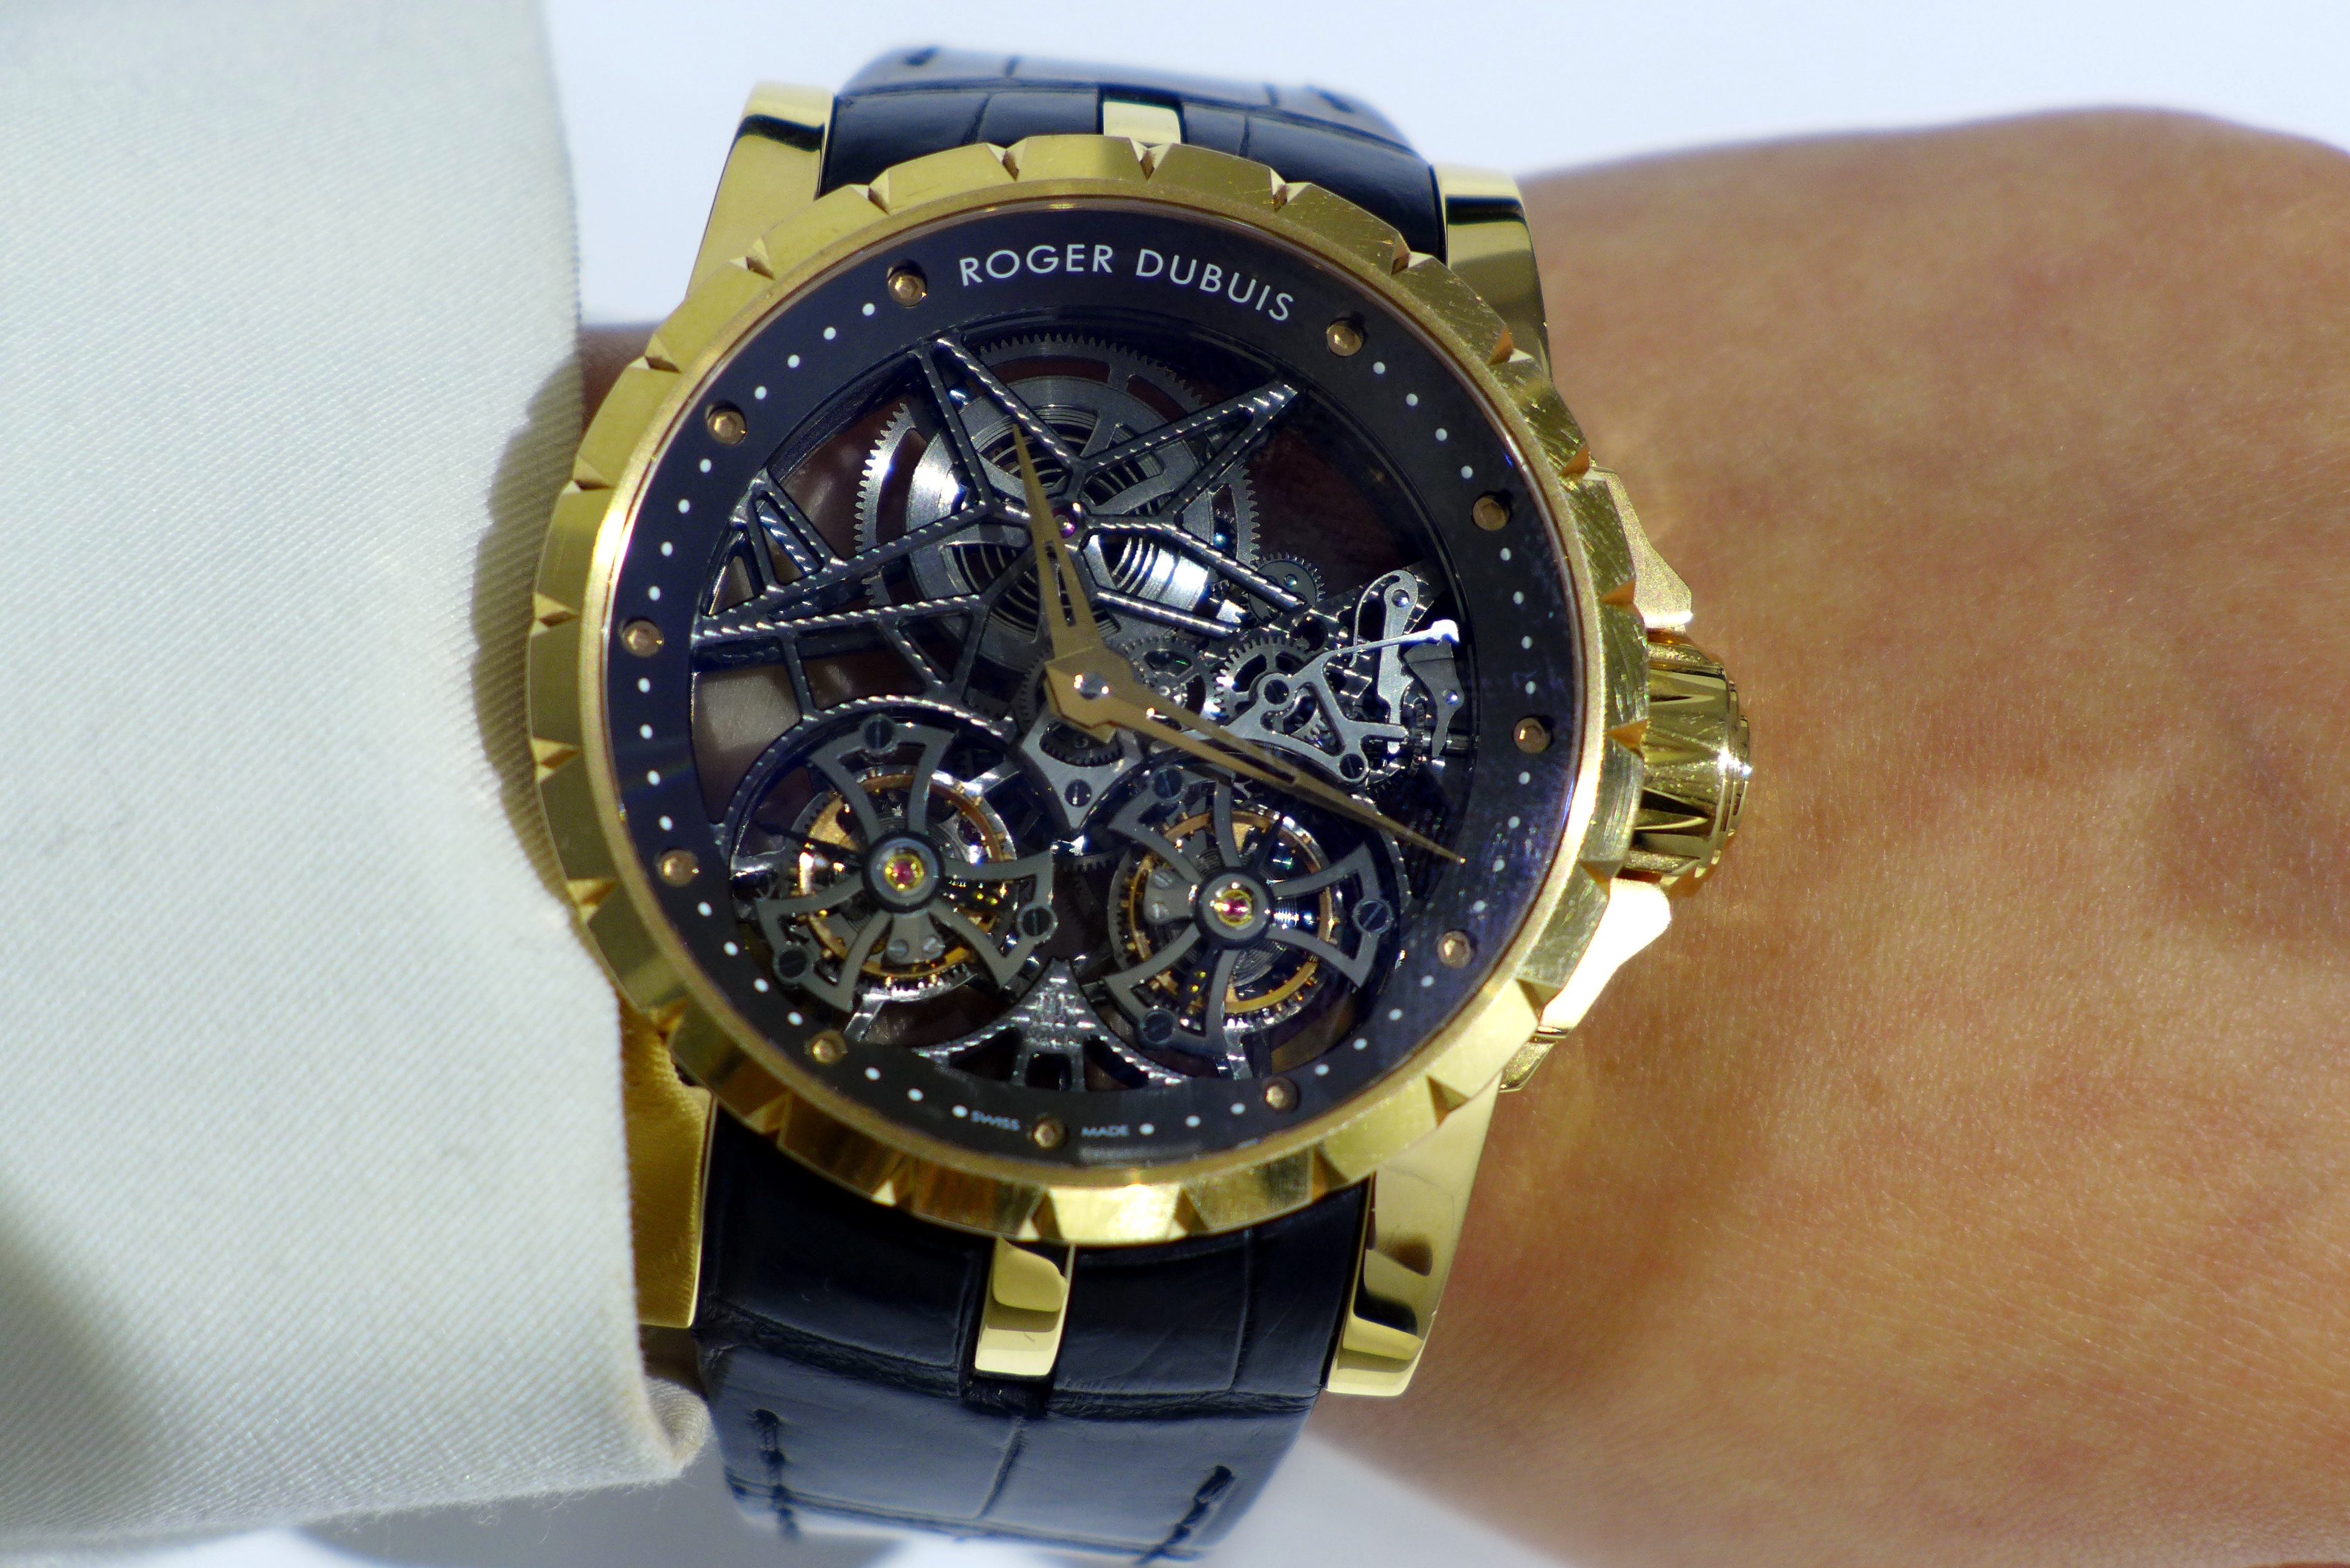 roger dubuis watches luxury watches for sale www